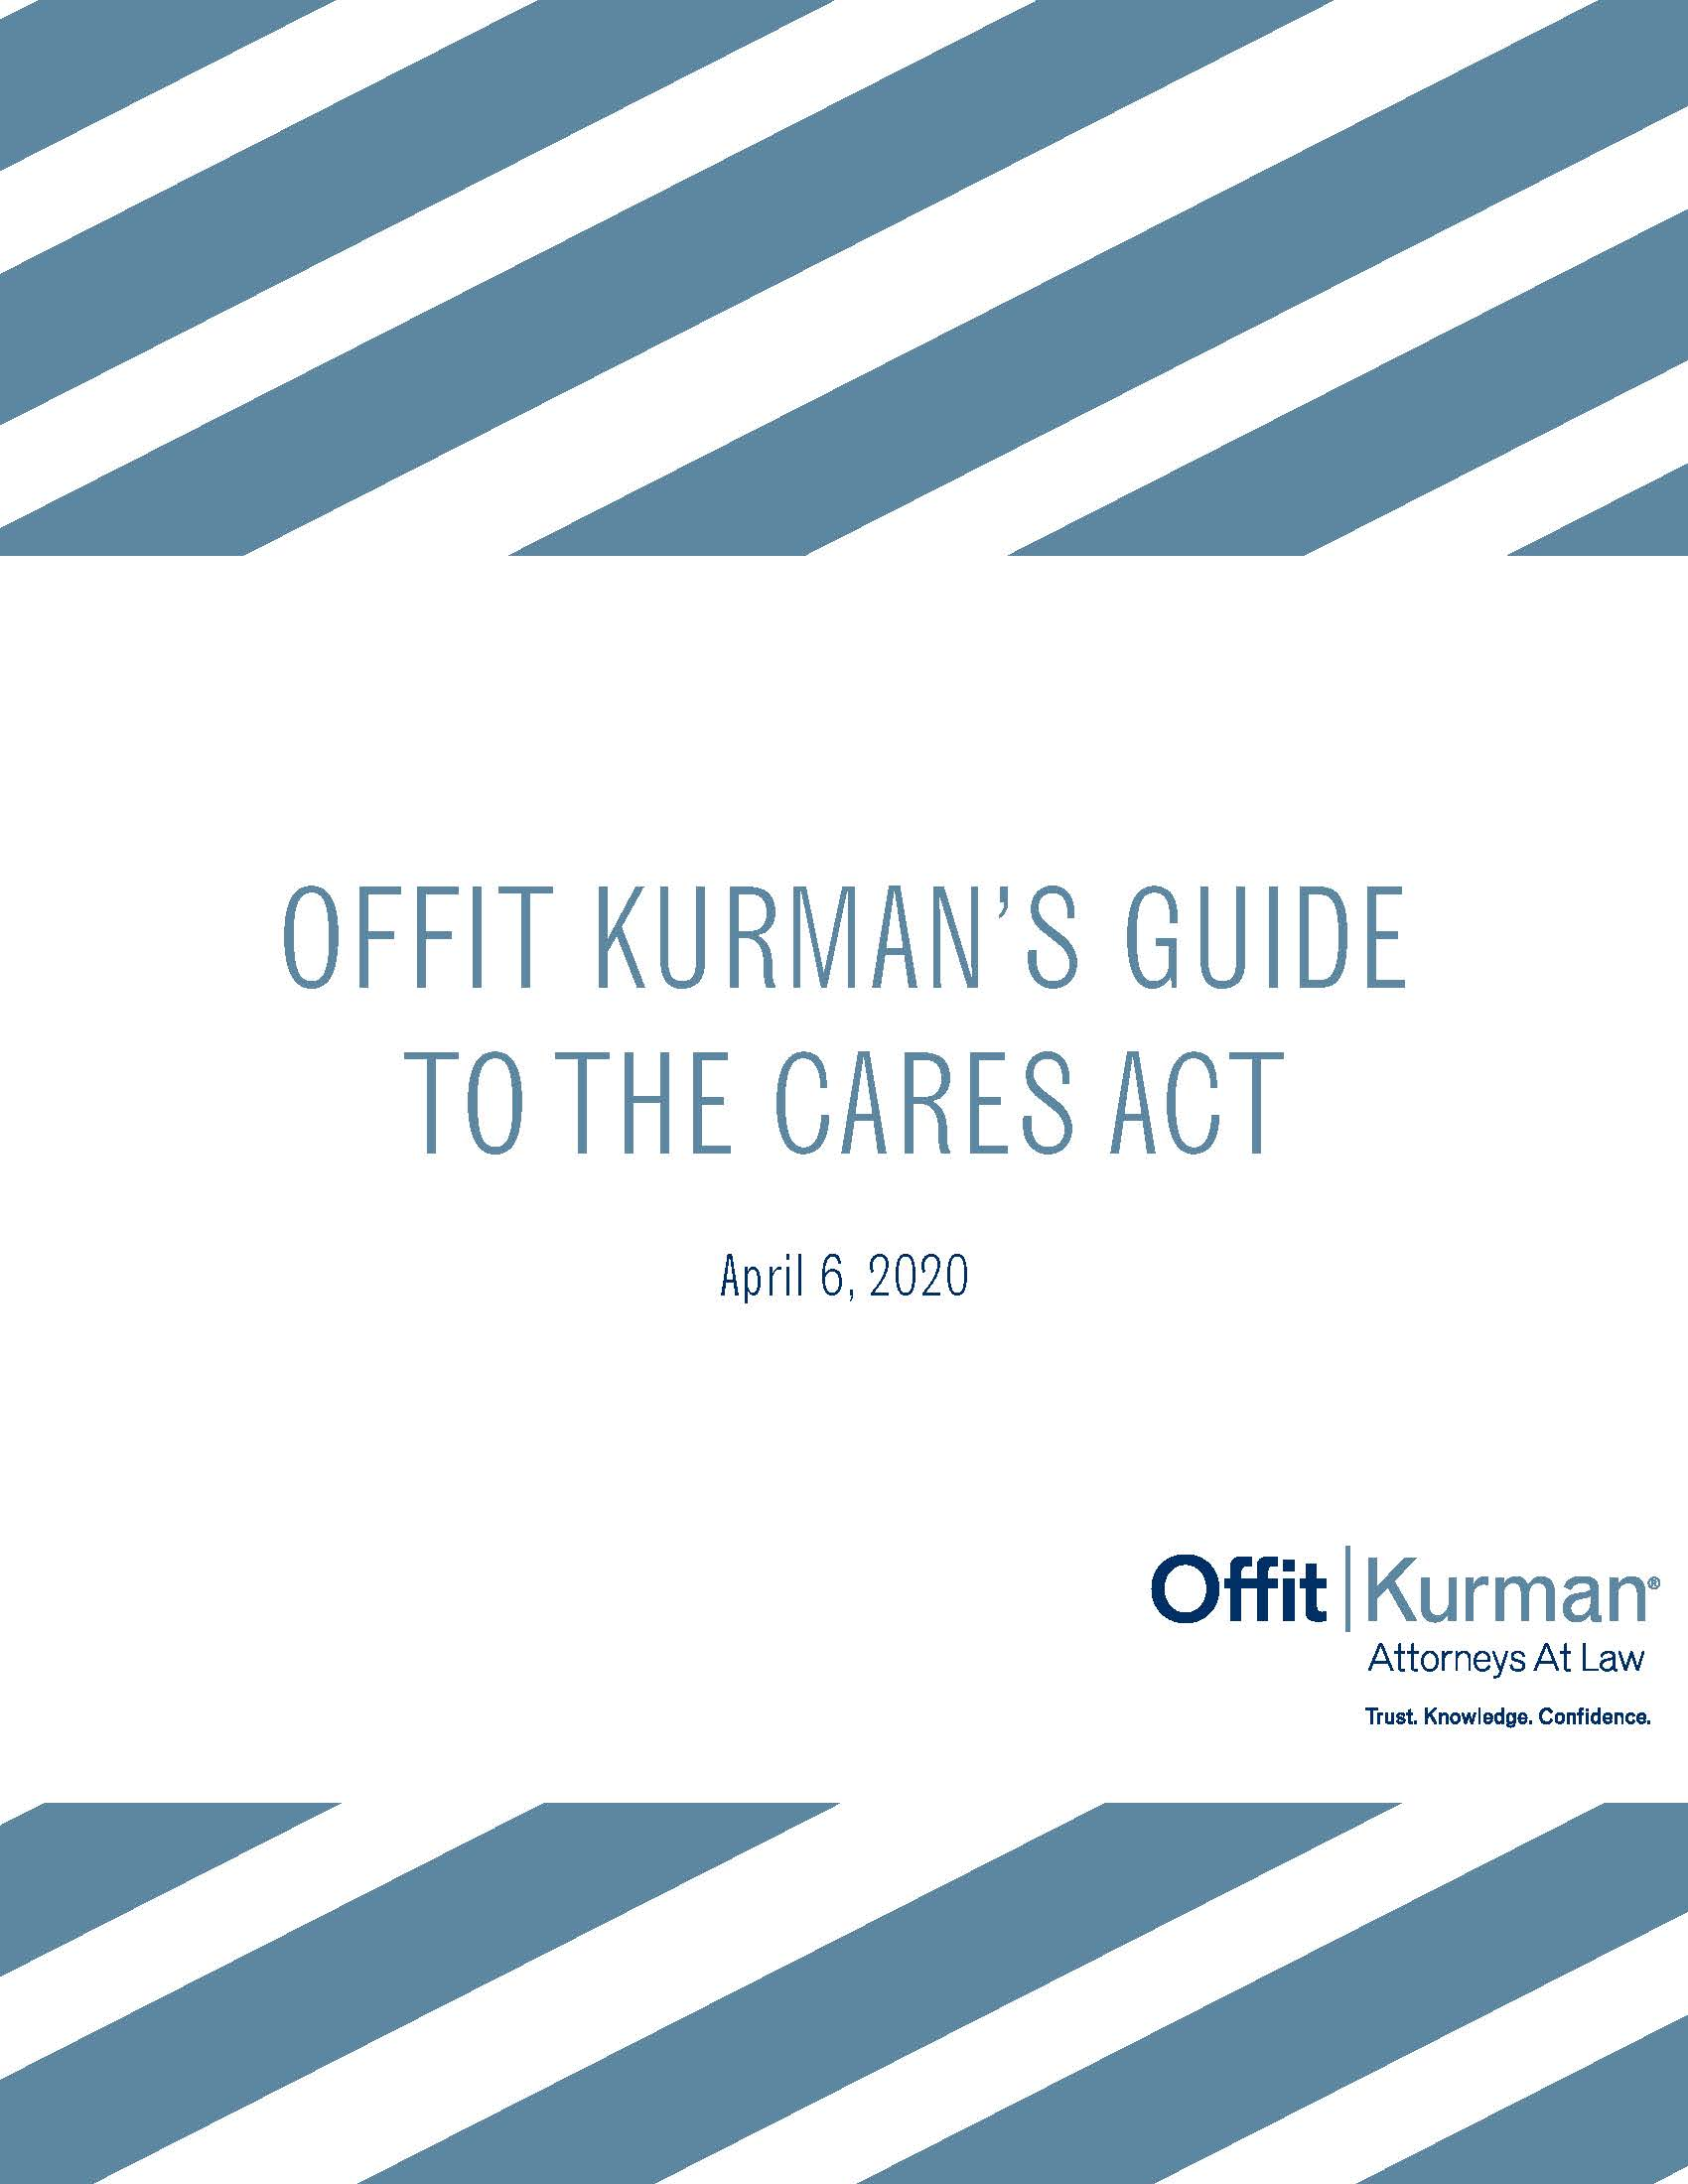 OK External CARES Act Guide-040620b_Page_01